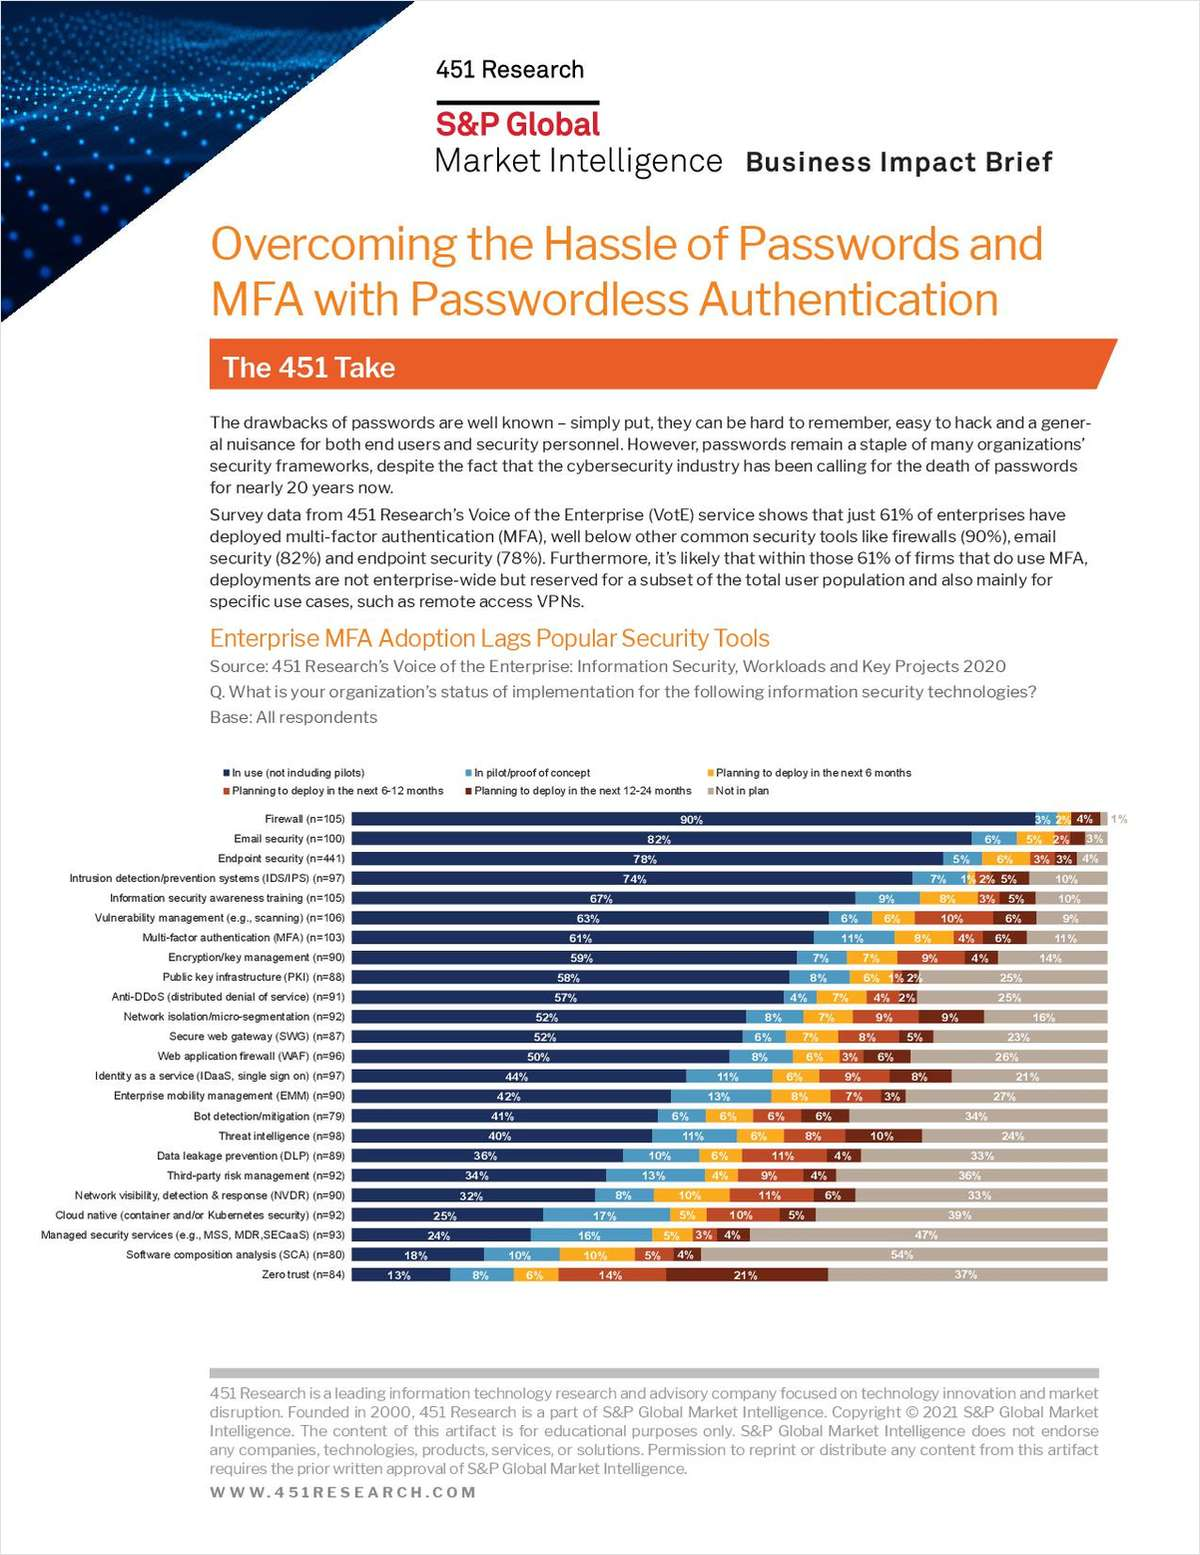 Overcoming the Hassle of Passwords and MFA with Passwordless Authentication